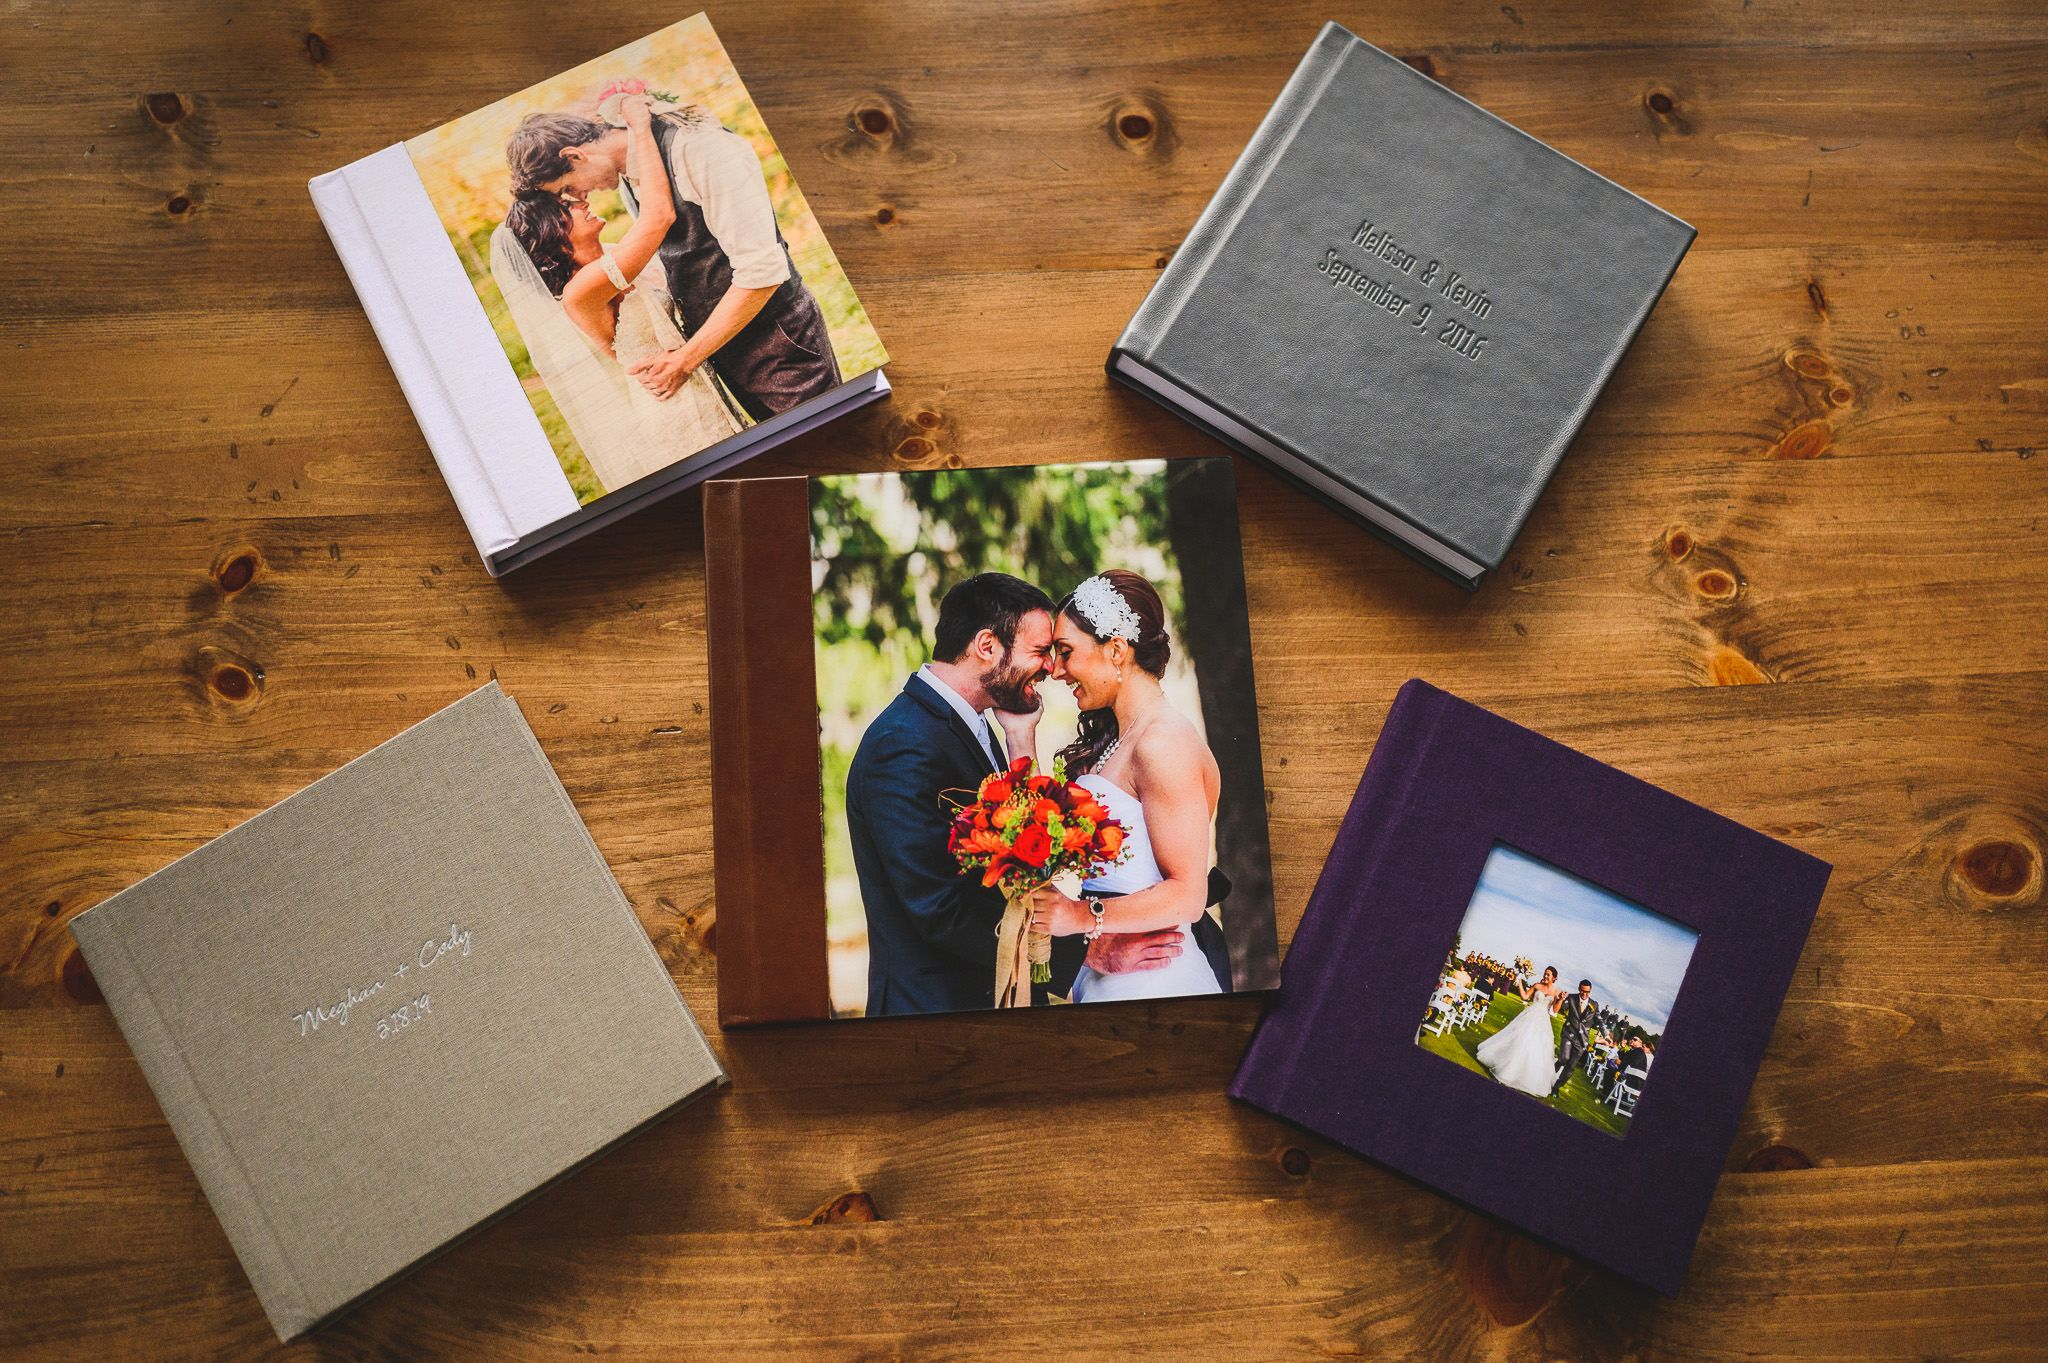 Wedding Album Design Nikki & Chip Photography